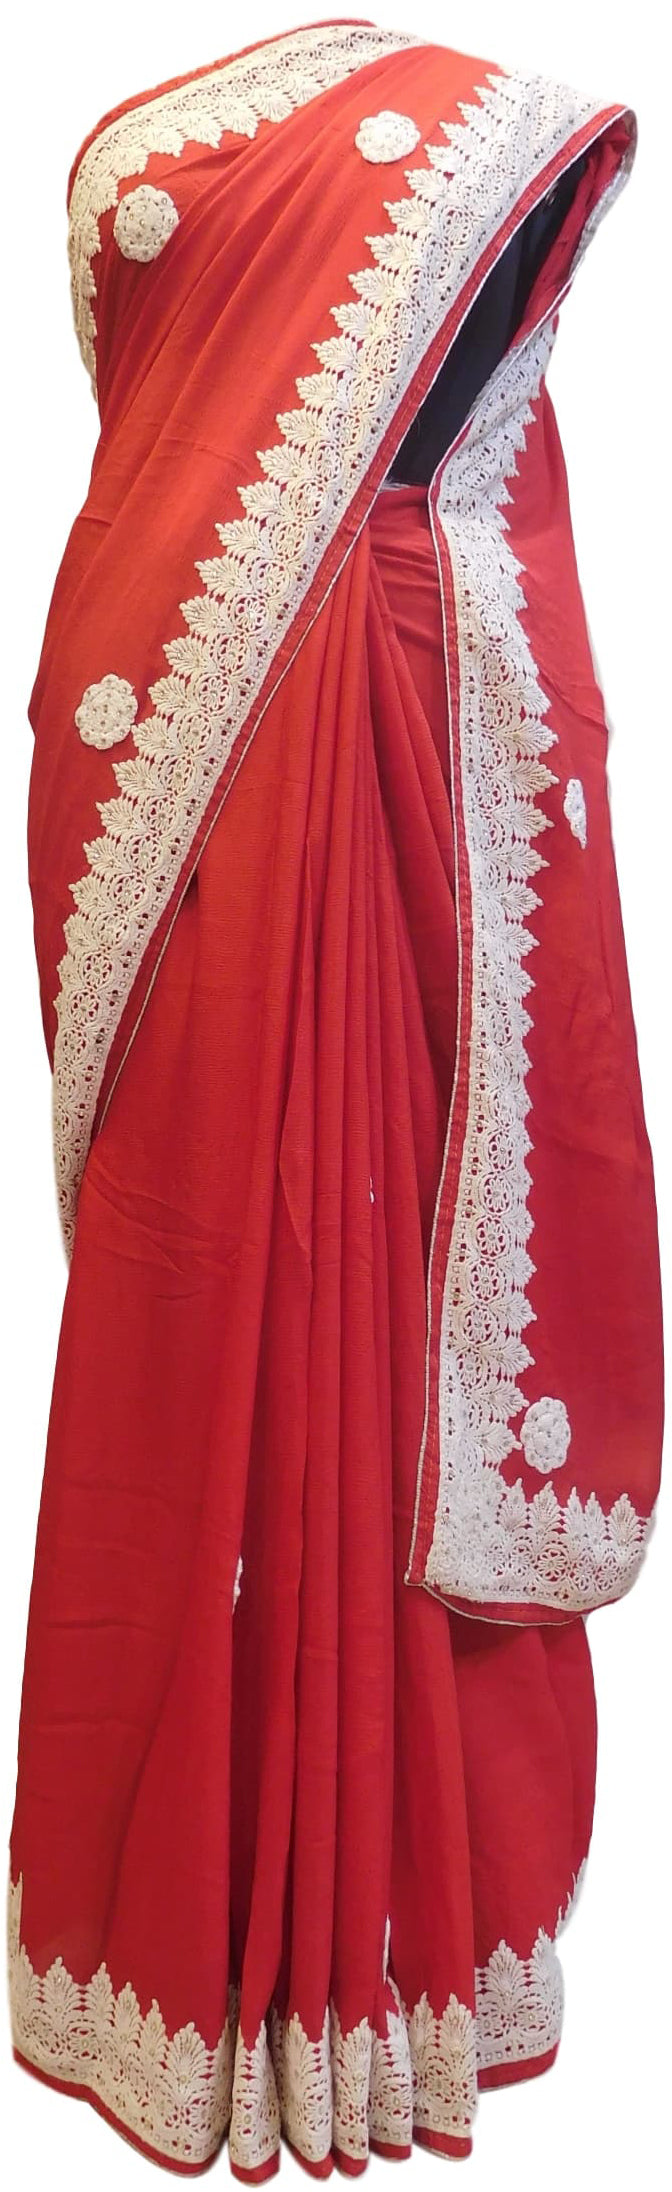 Red Designer Crepe (Chinon) Hand Embroidery Thread Stone Work Saree Sari